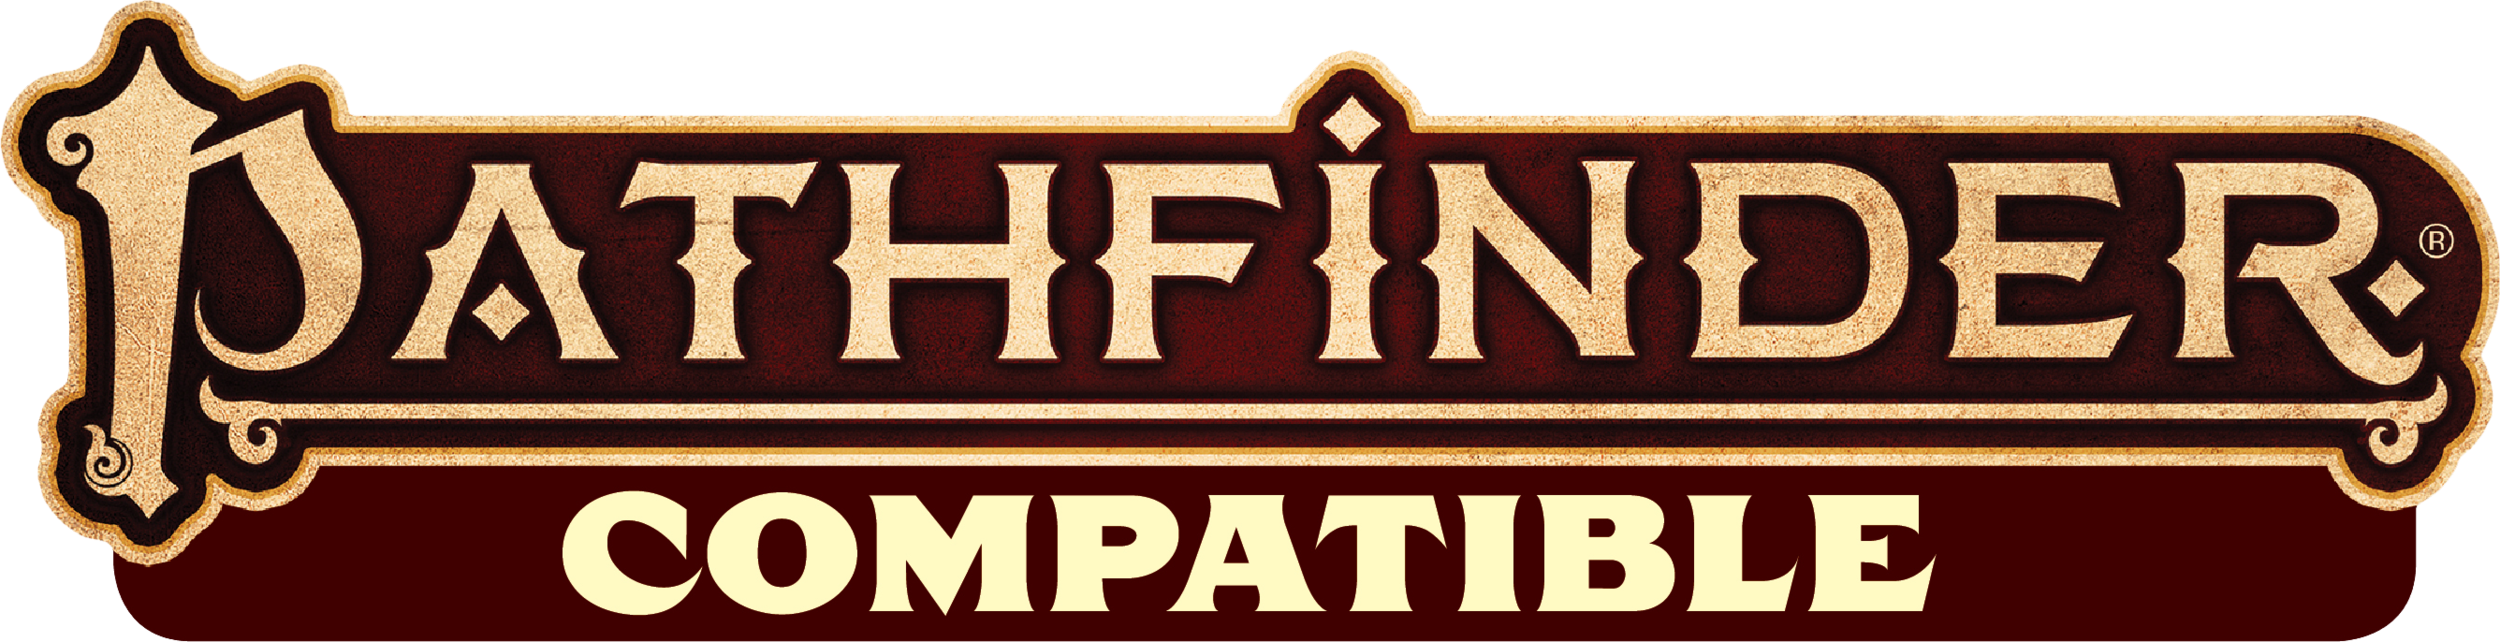 Pathfinder-Second-Edition-Compatibility-Color.png